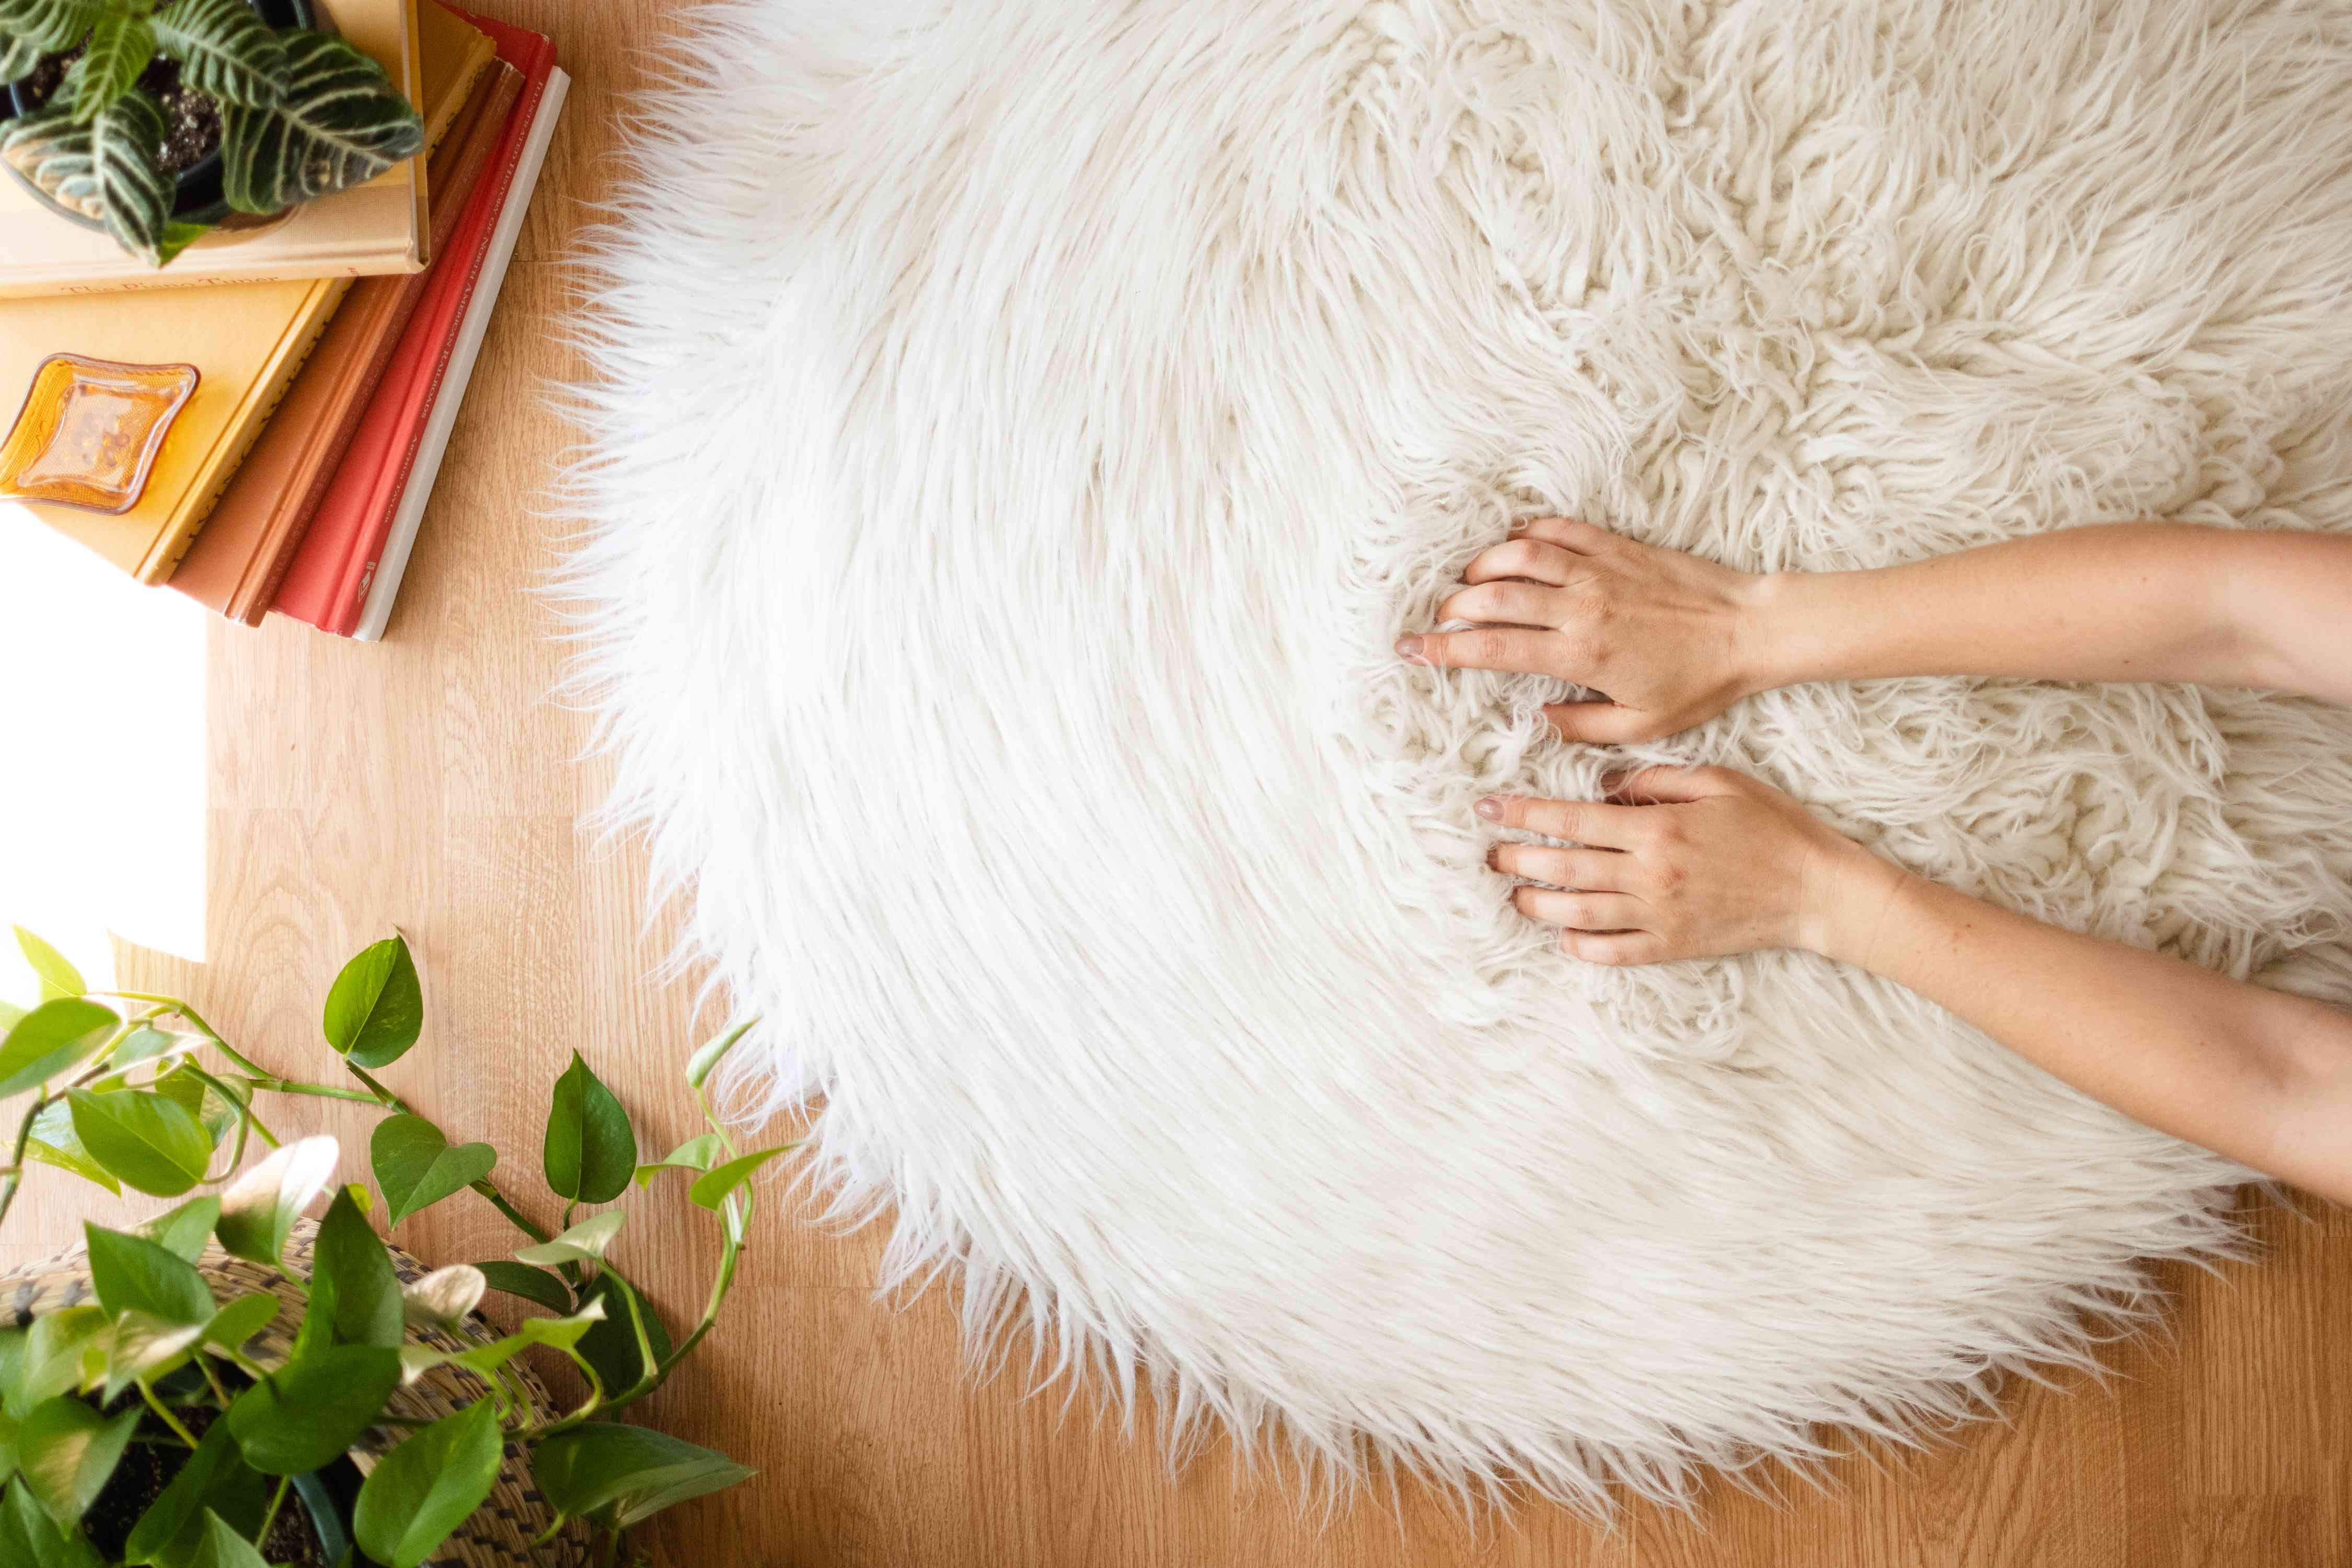 White shag rug being fluffed by hand